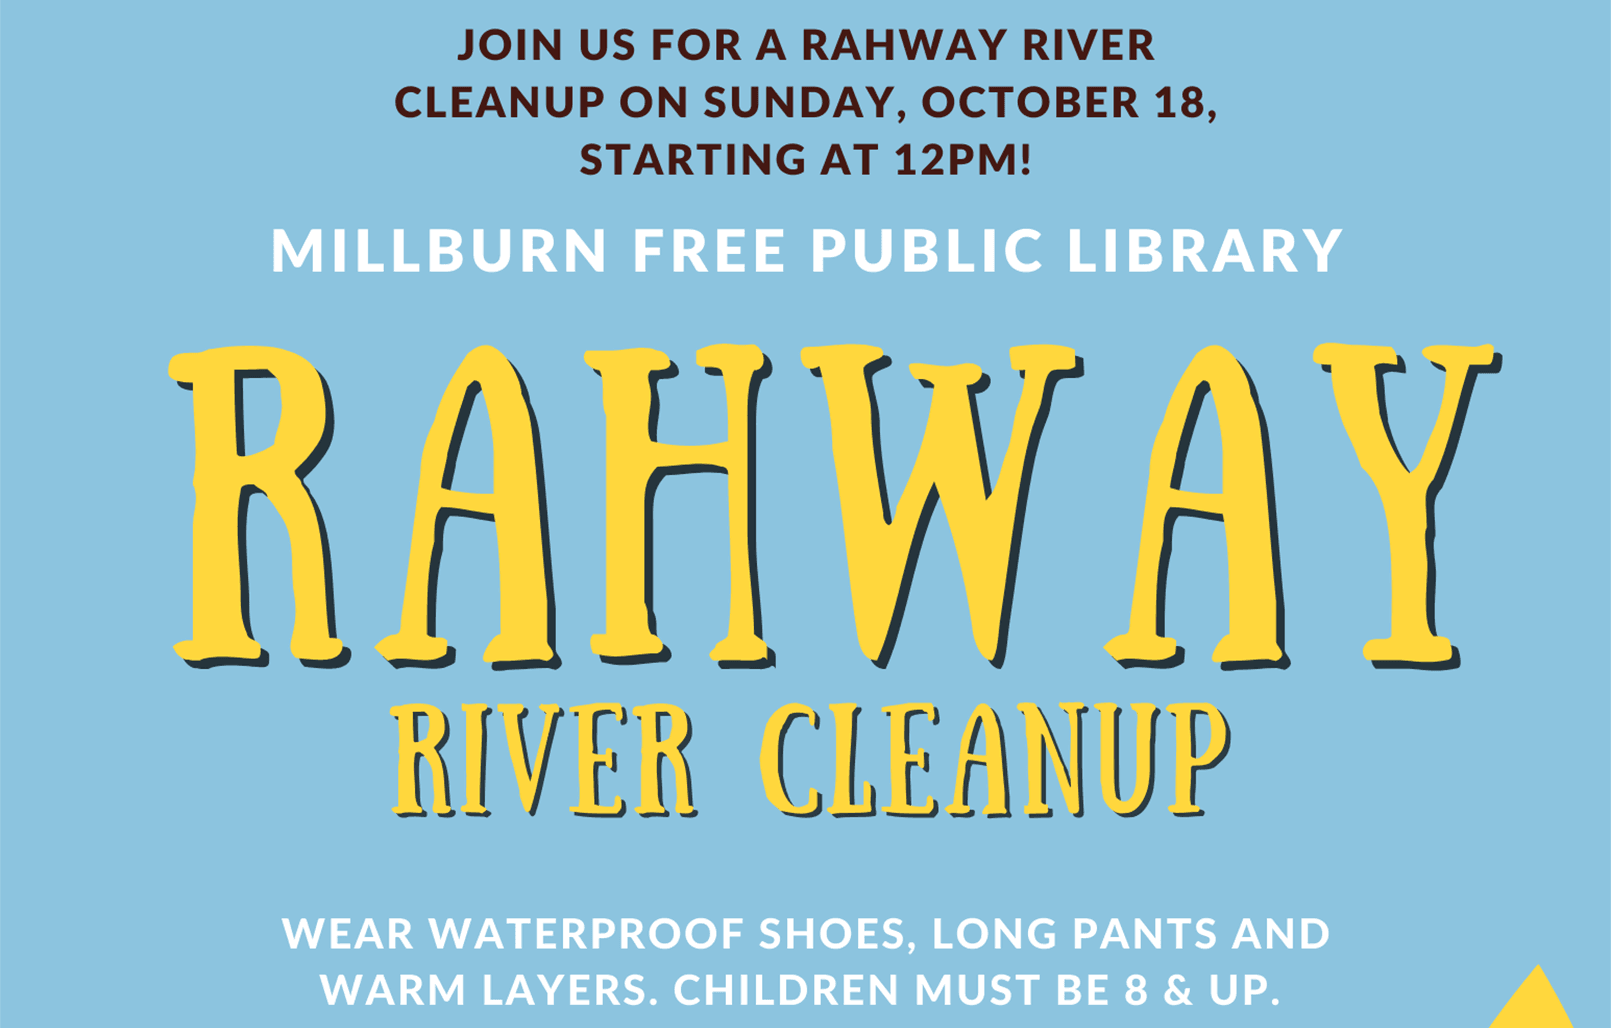 Rahway River Cleanup text in yellow on blue background